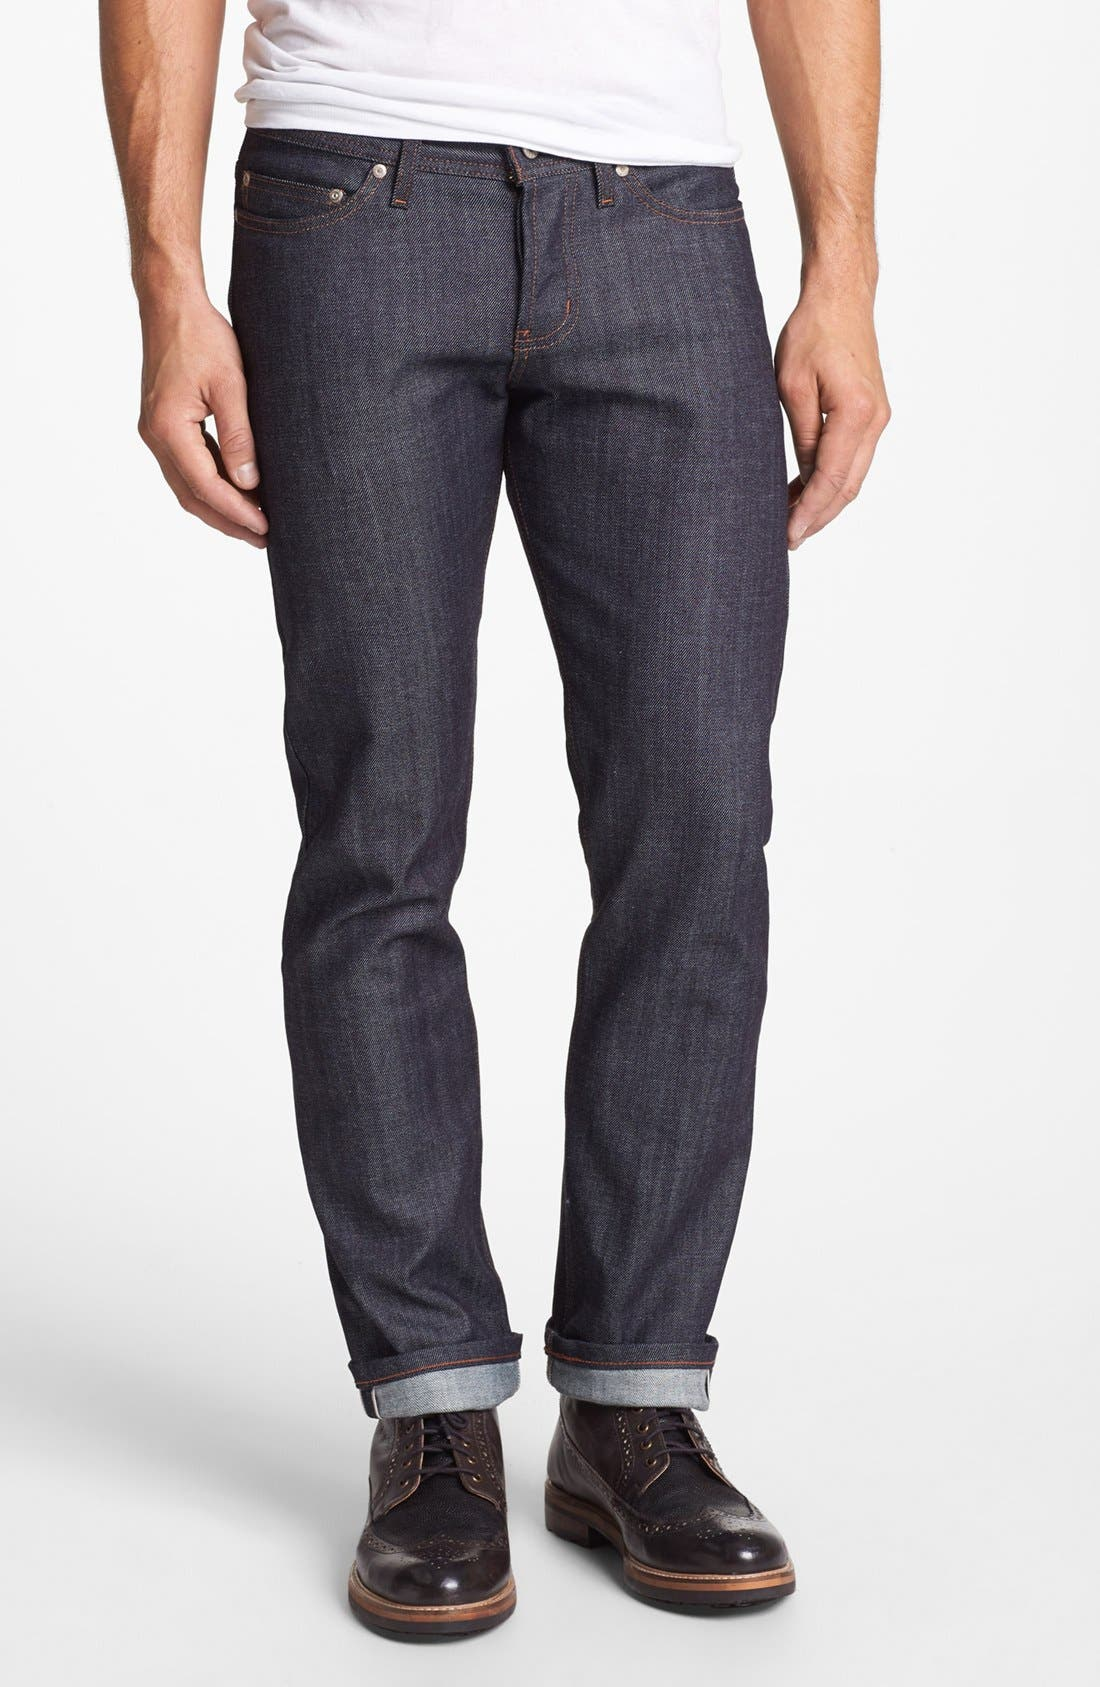 NAKED & FAMOUS DENIM, Weird Guy Slim Fit Raw Jeans, Main thumbnail 1, color, STRETCH SELVEDGE